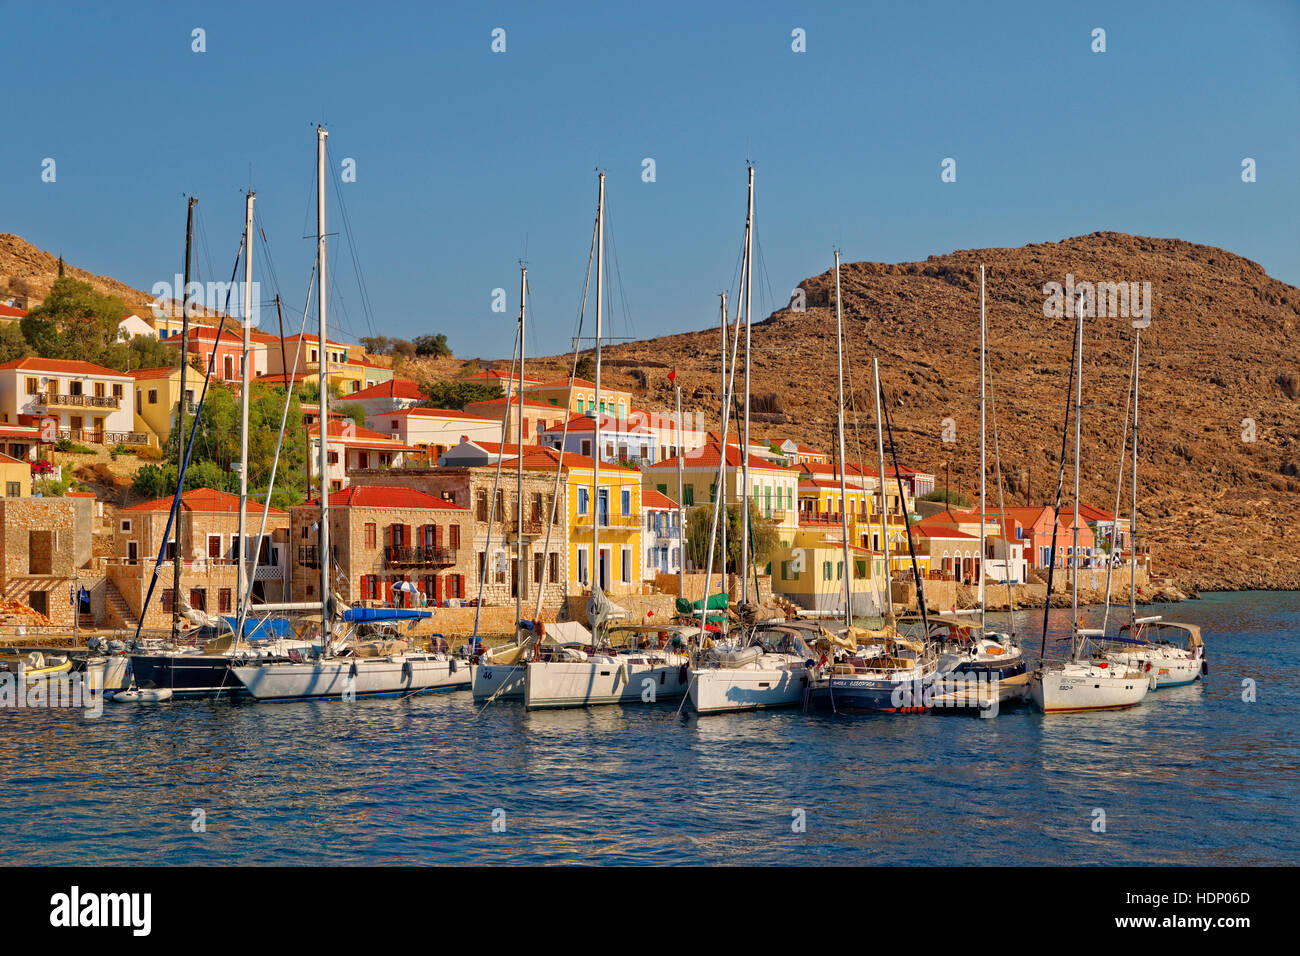 Yacht berths at Chalki town, Greek island of Chalki situated off the north coast of Rhodes, Dodecanese Island group, - Stock Image